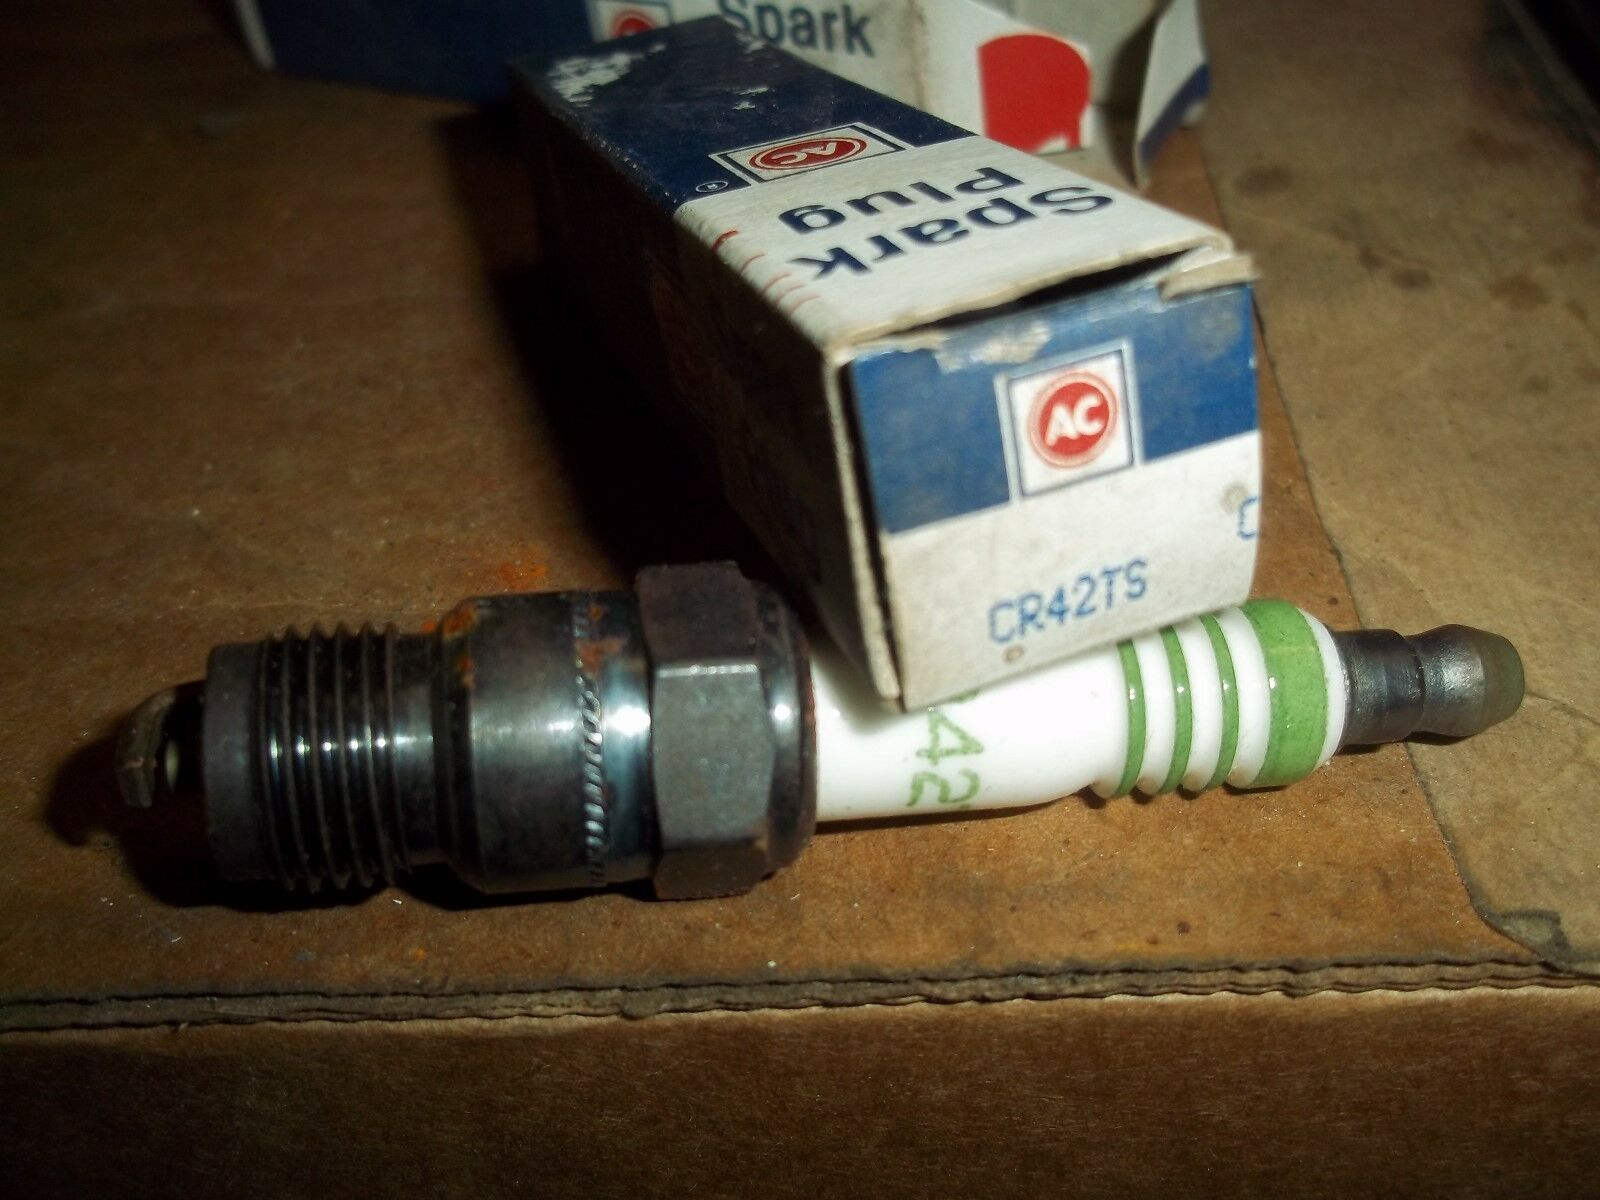 Spark Plug-Conventional ACDelco Pro CR42TS